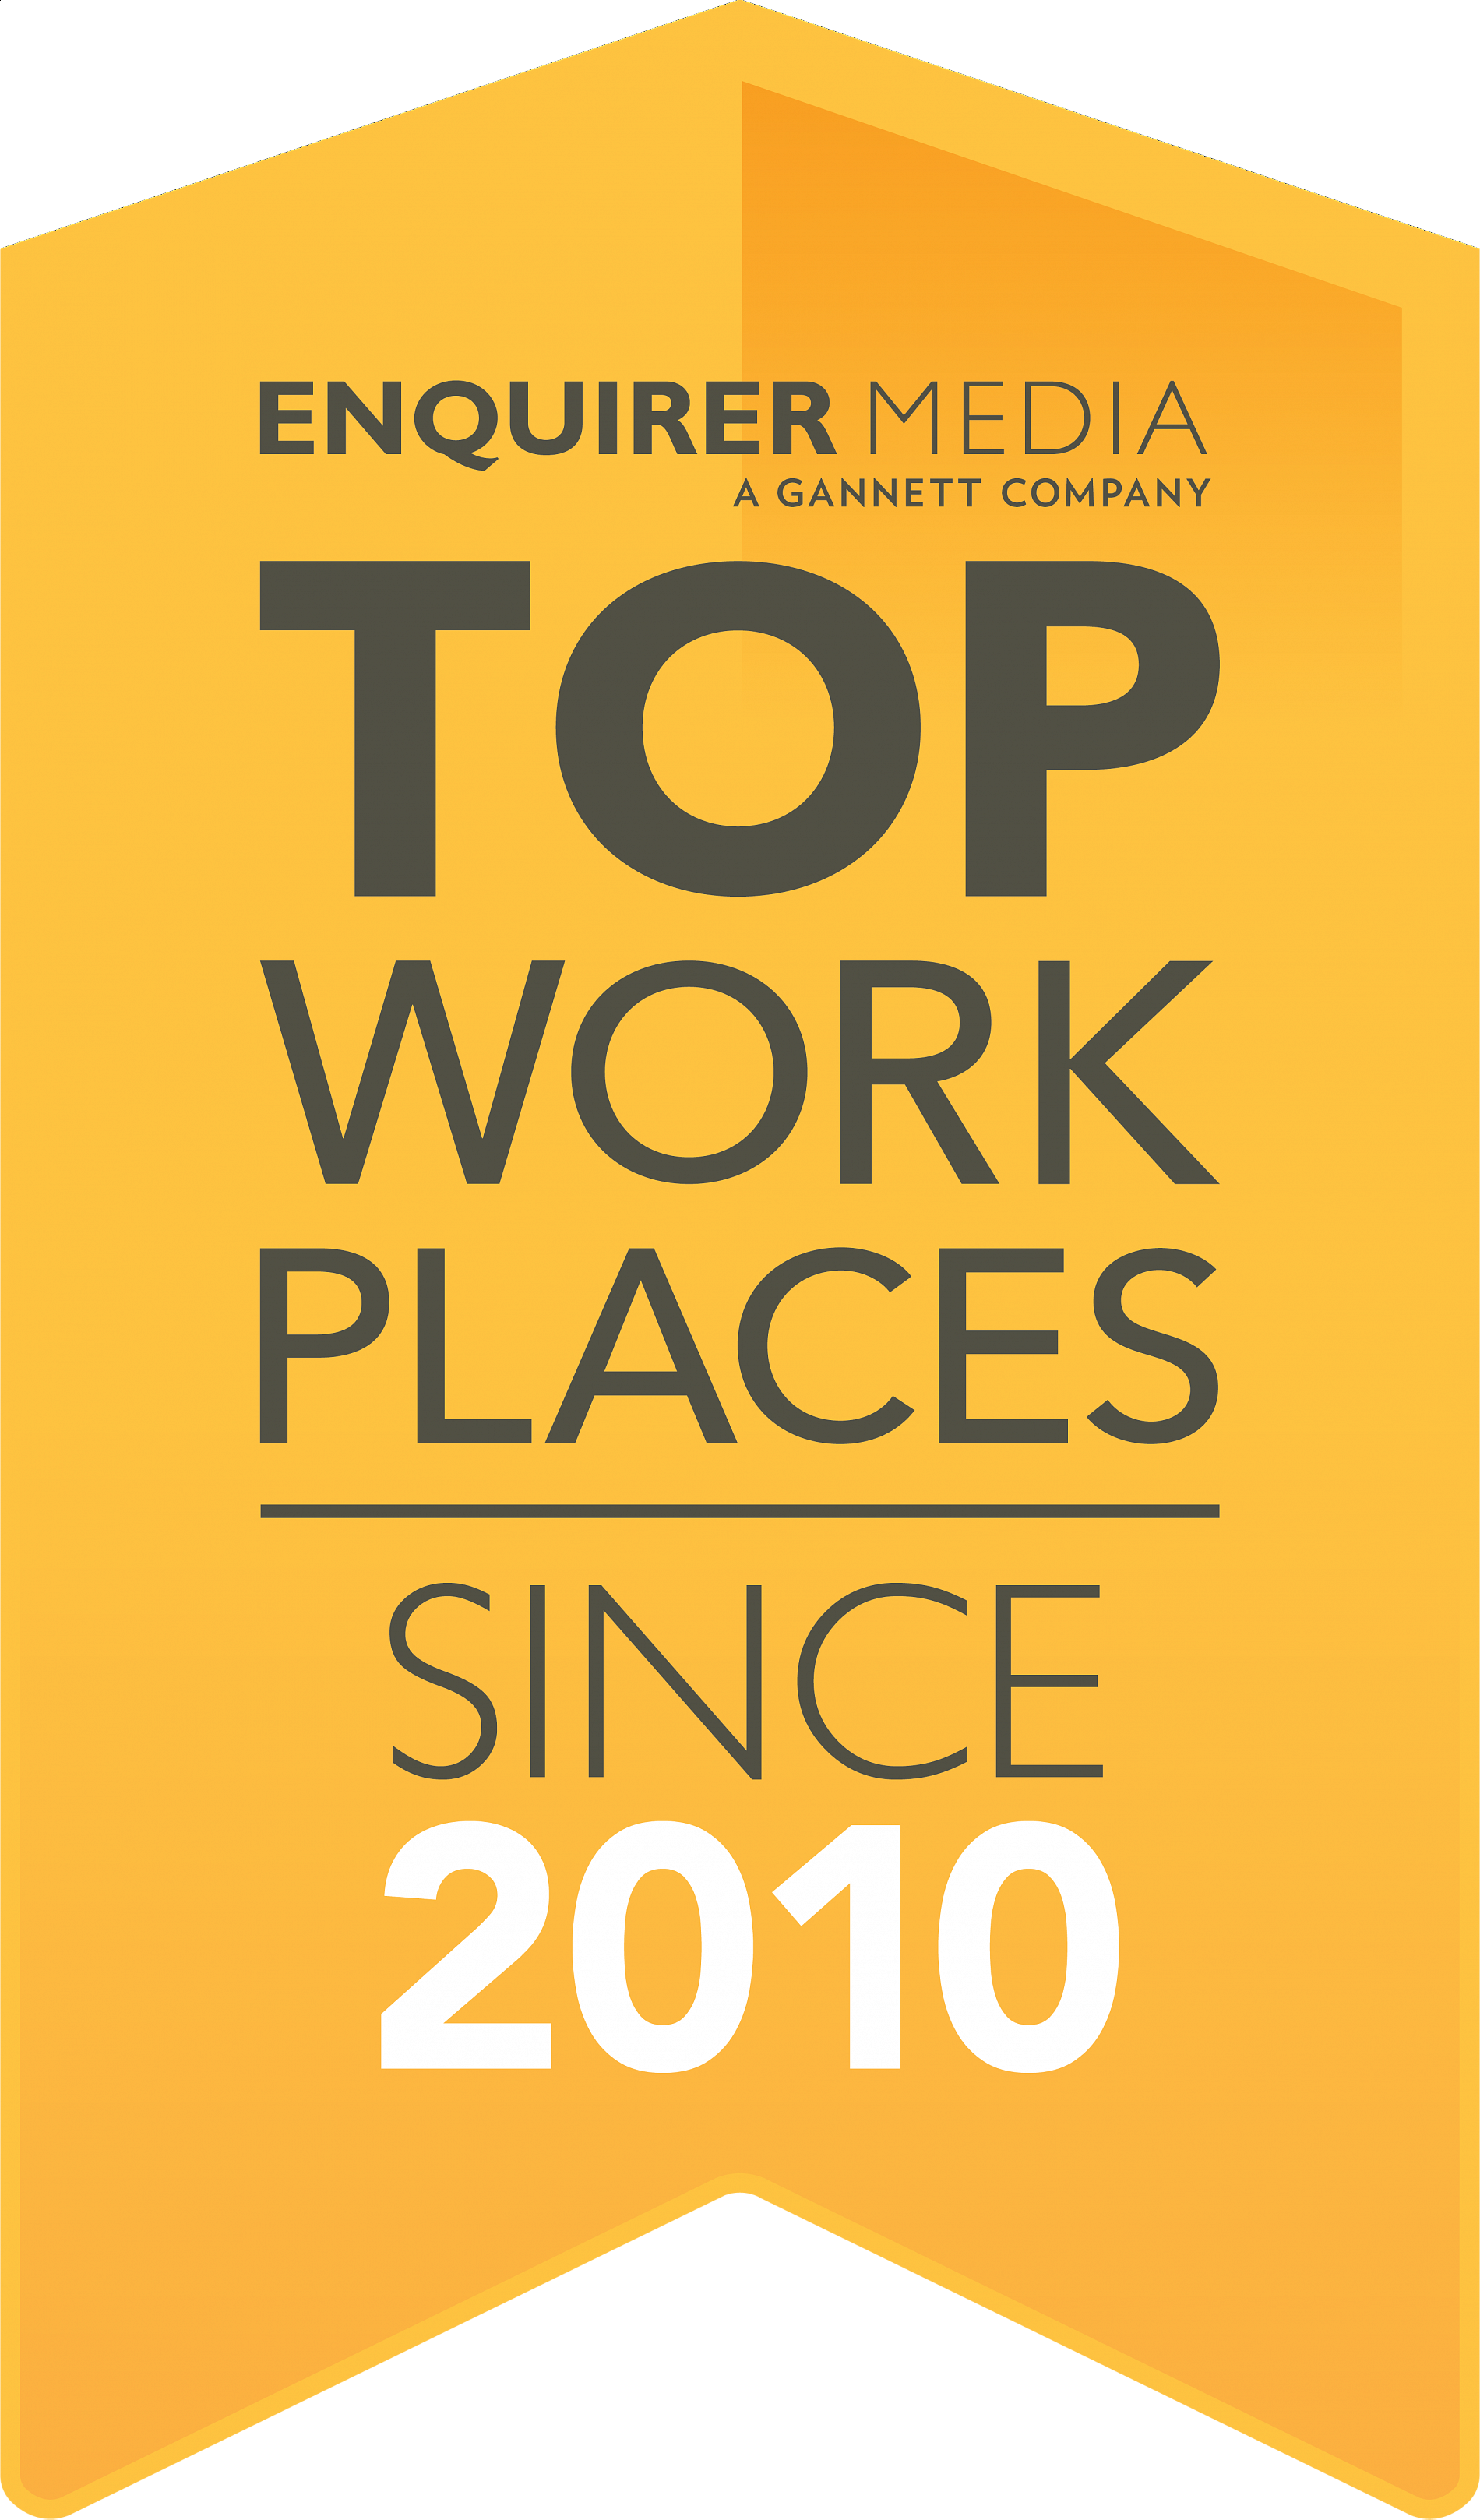 Top Work Places Since 2010